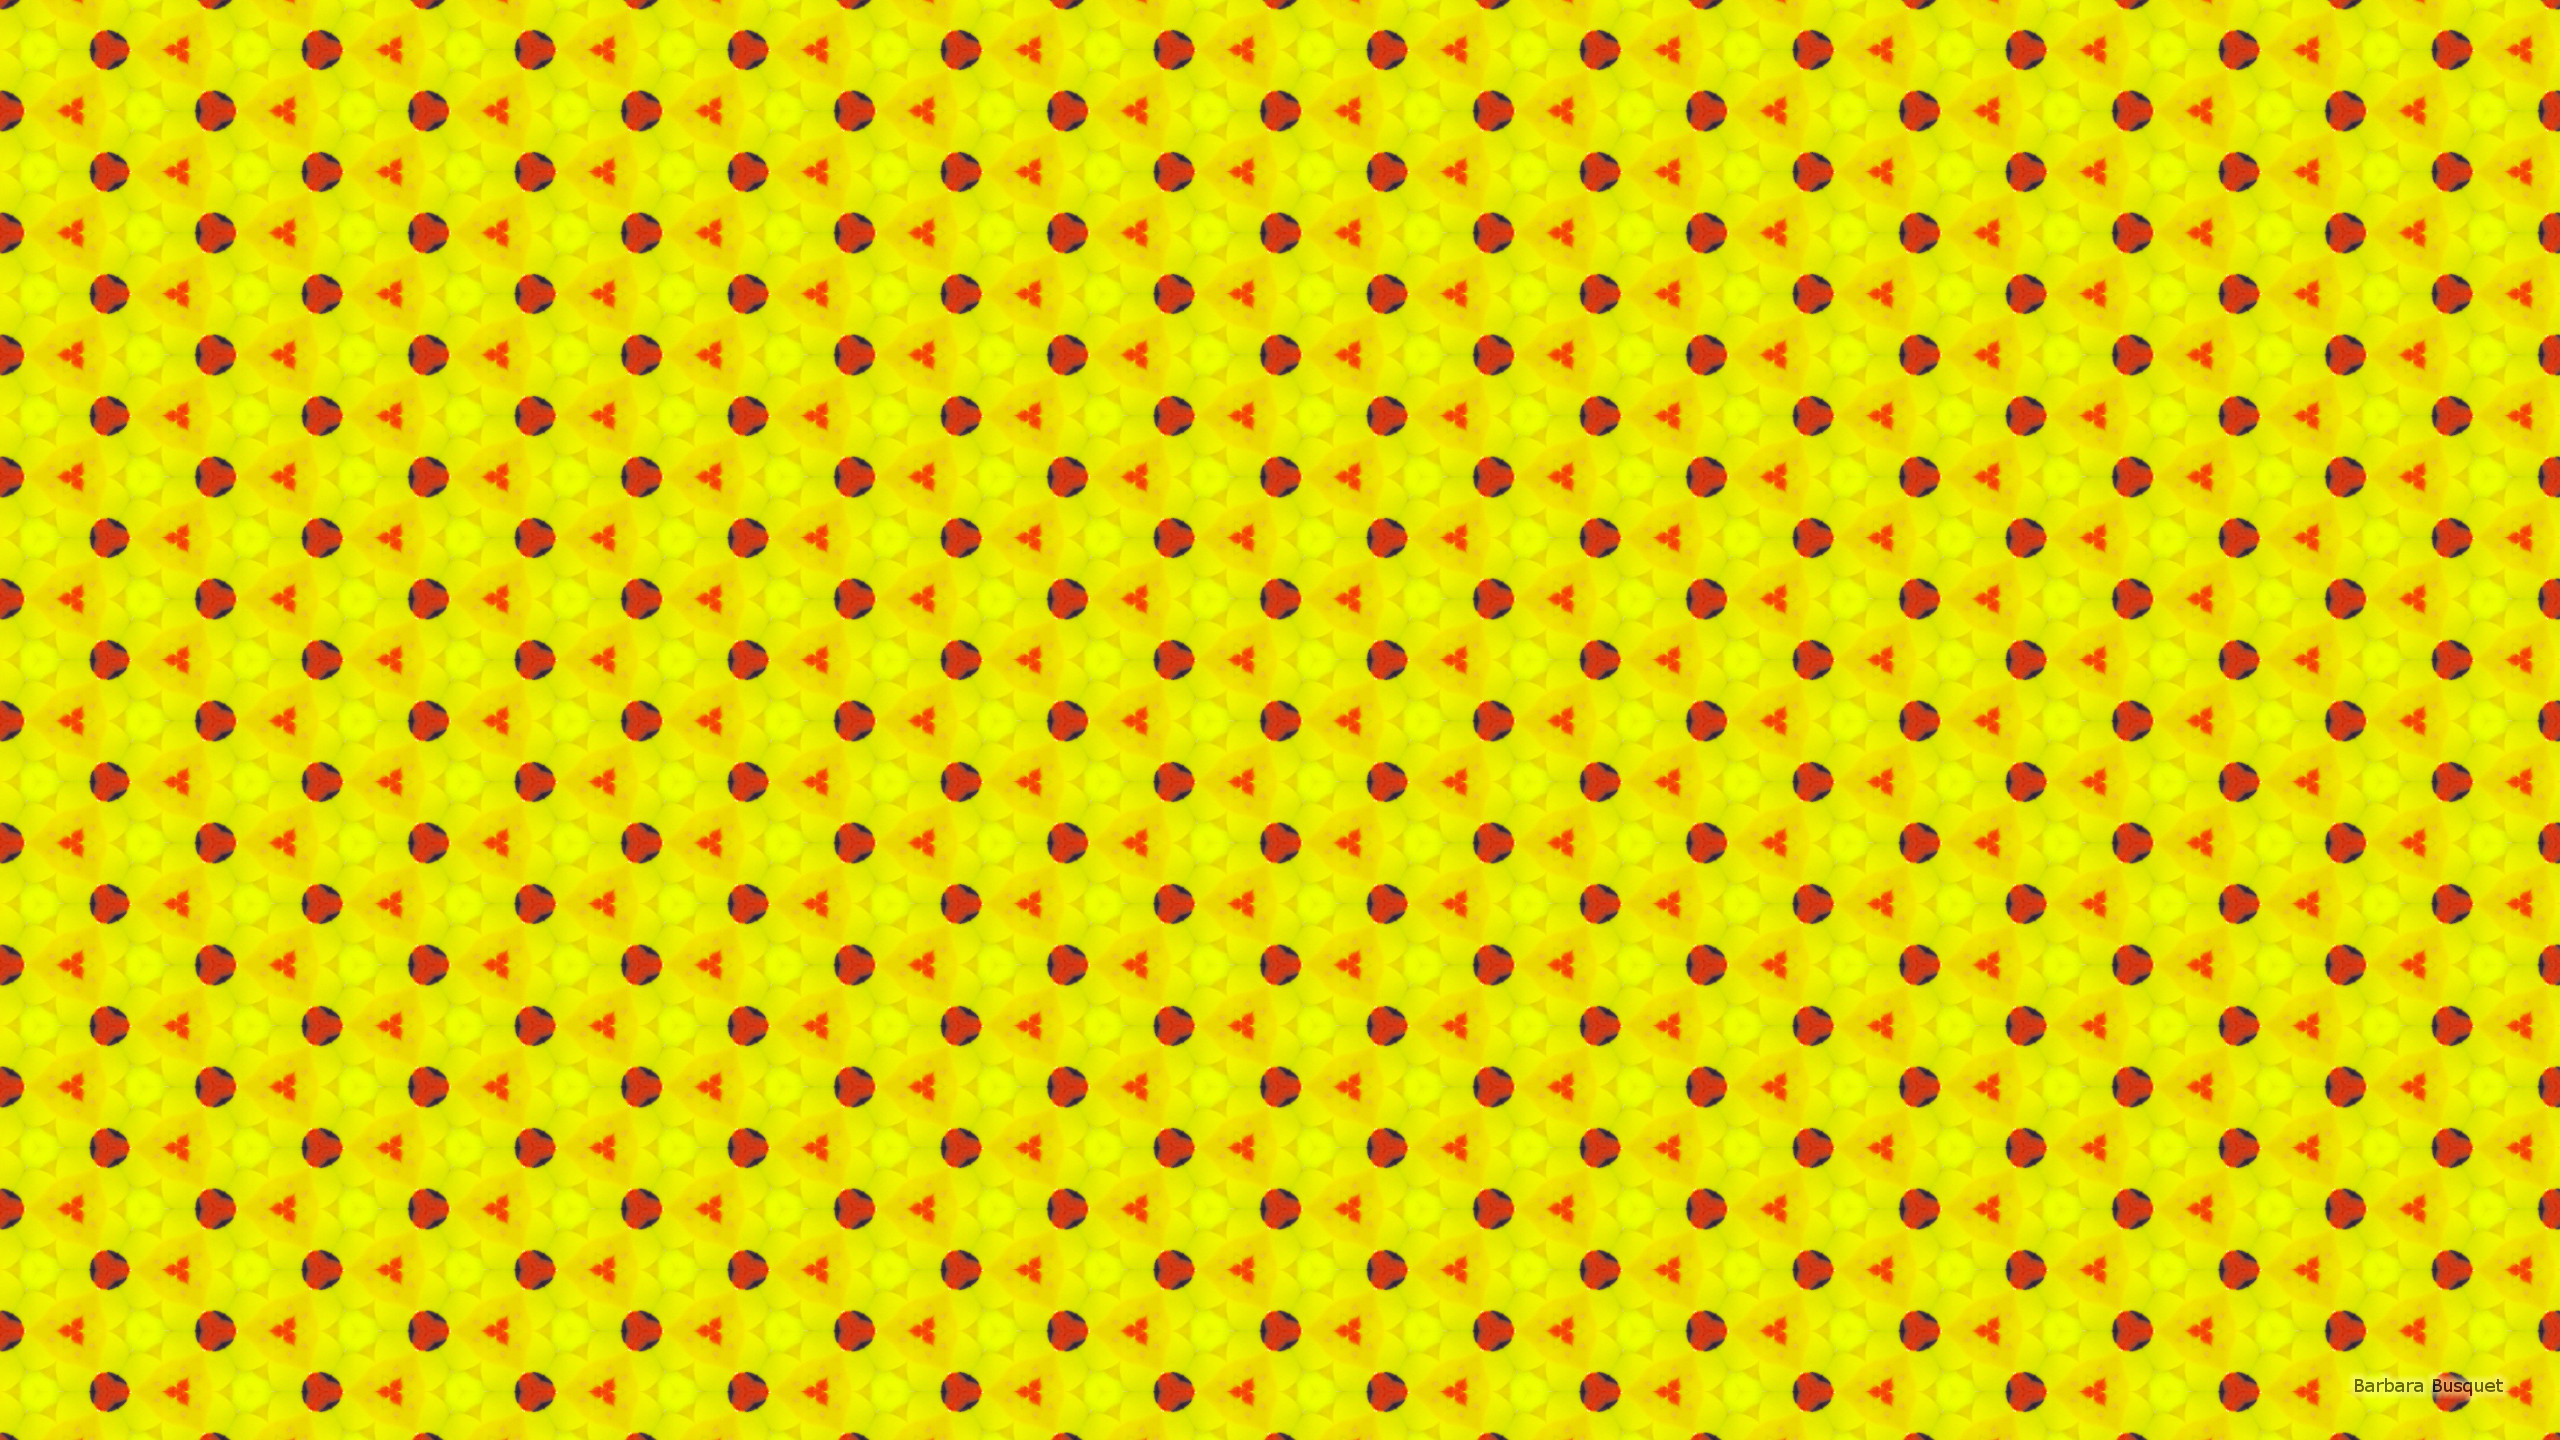 Nice Desktop Wallpaper With A Red And Light Yellow Pattern Triangles Circles